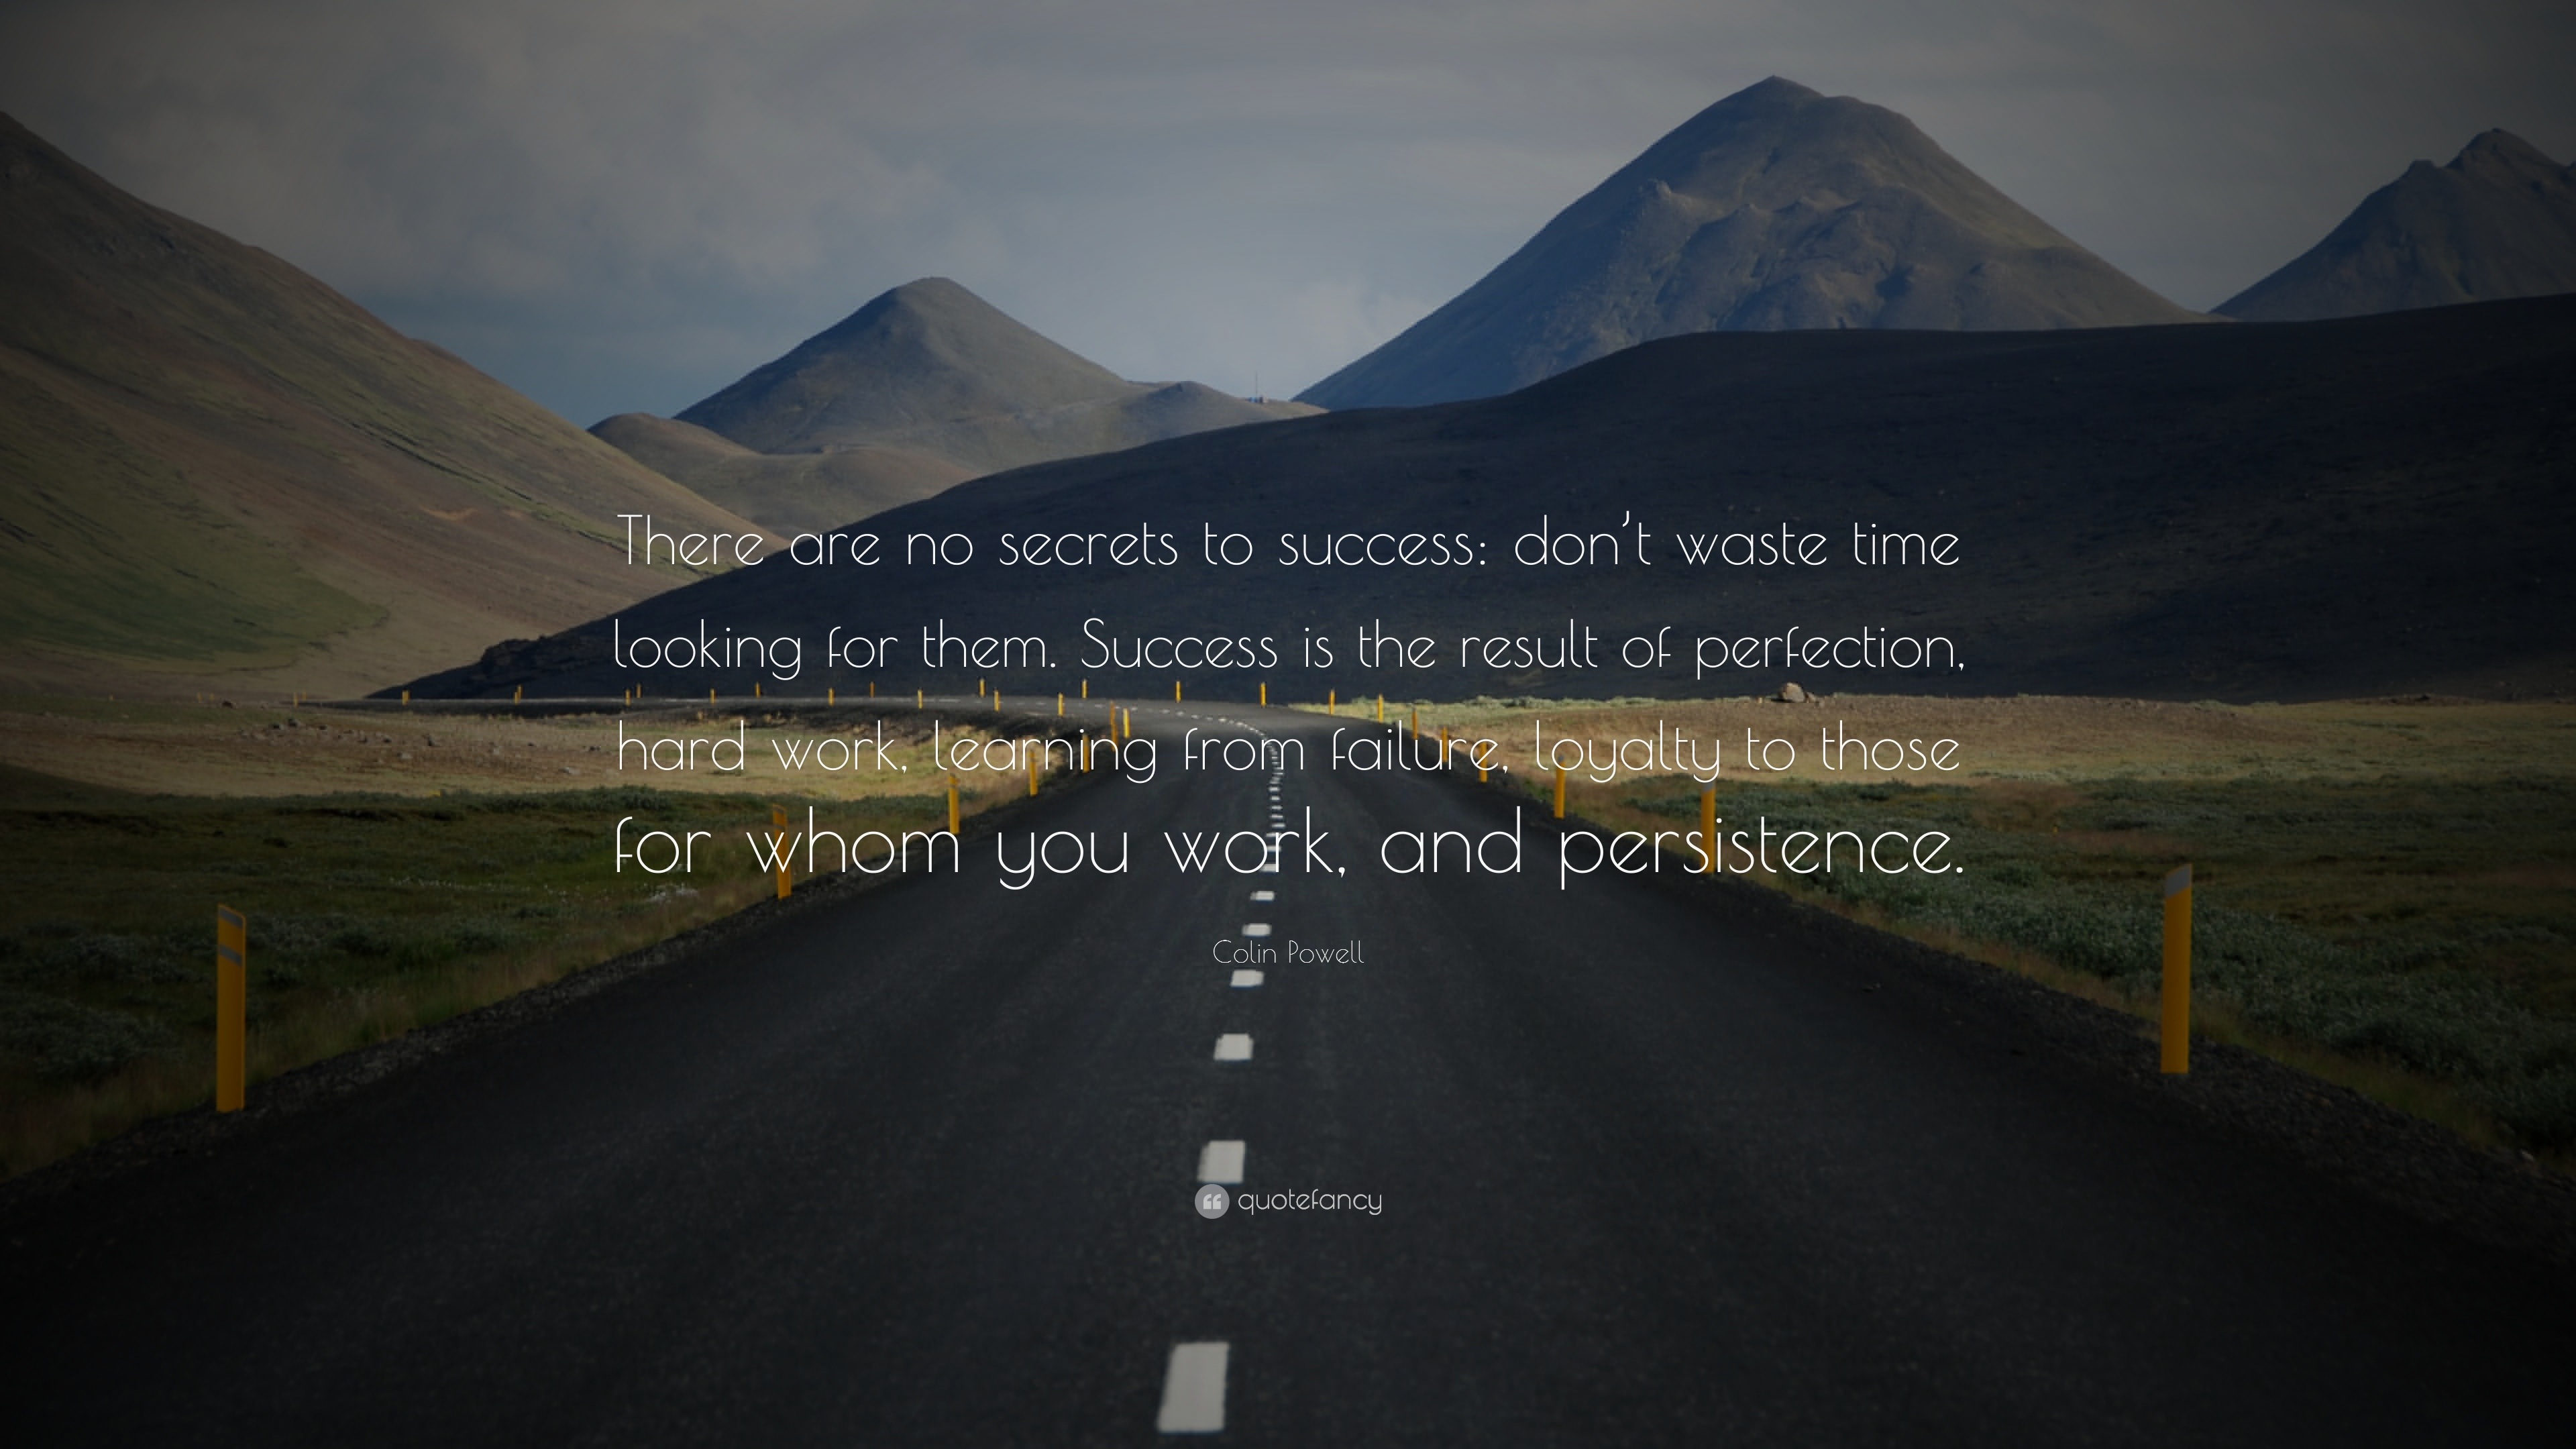 success quotes quotefancy success quotes ldquothere are no secrets to success don t waste time